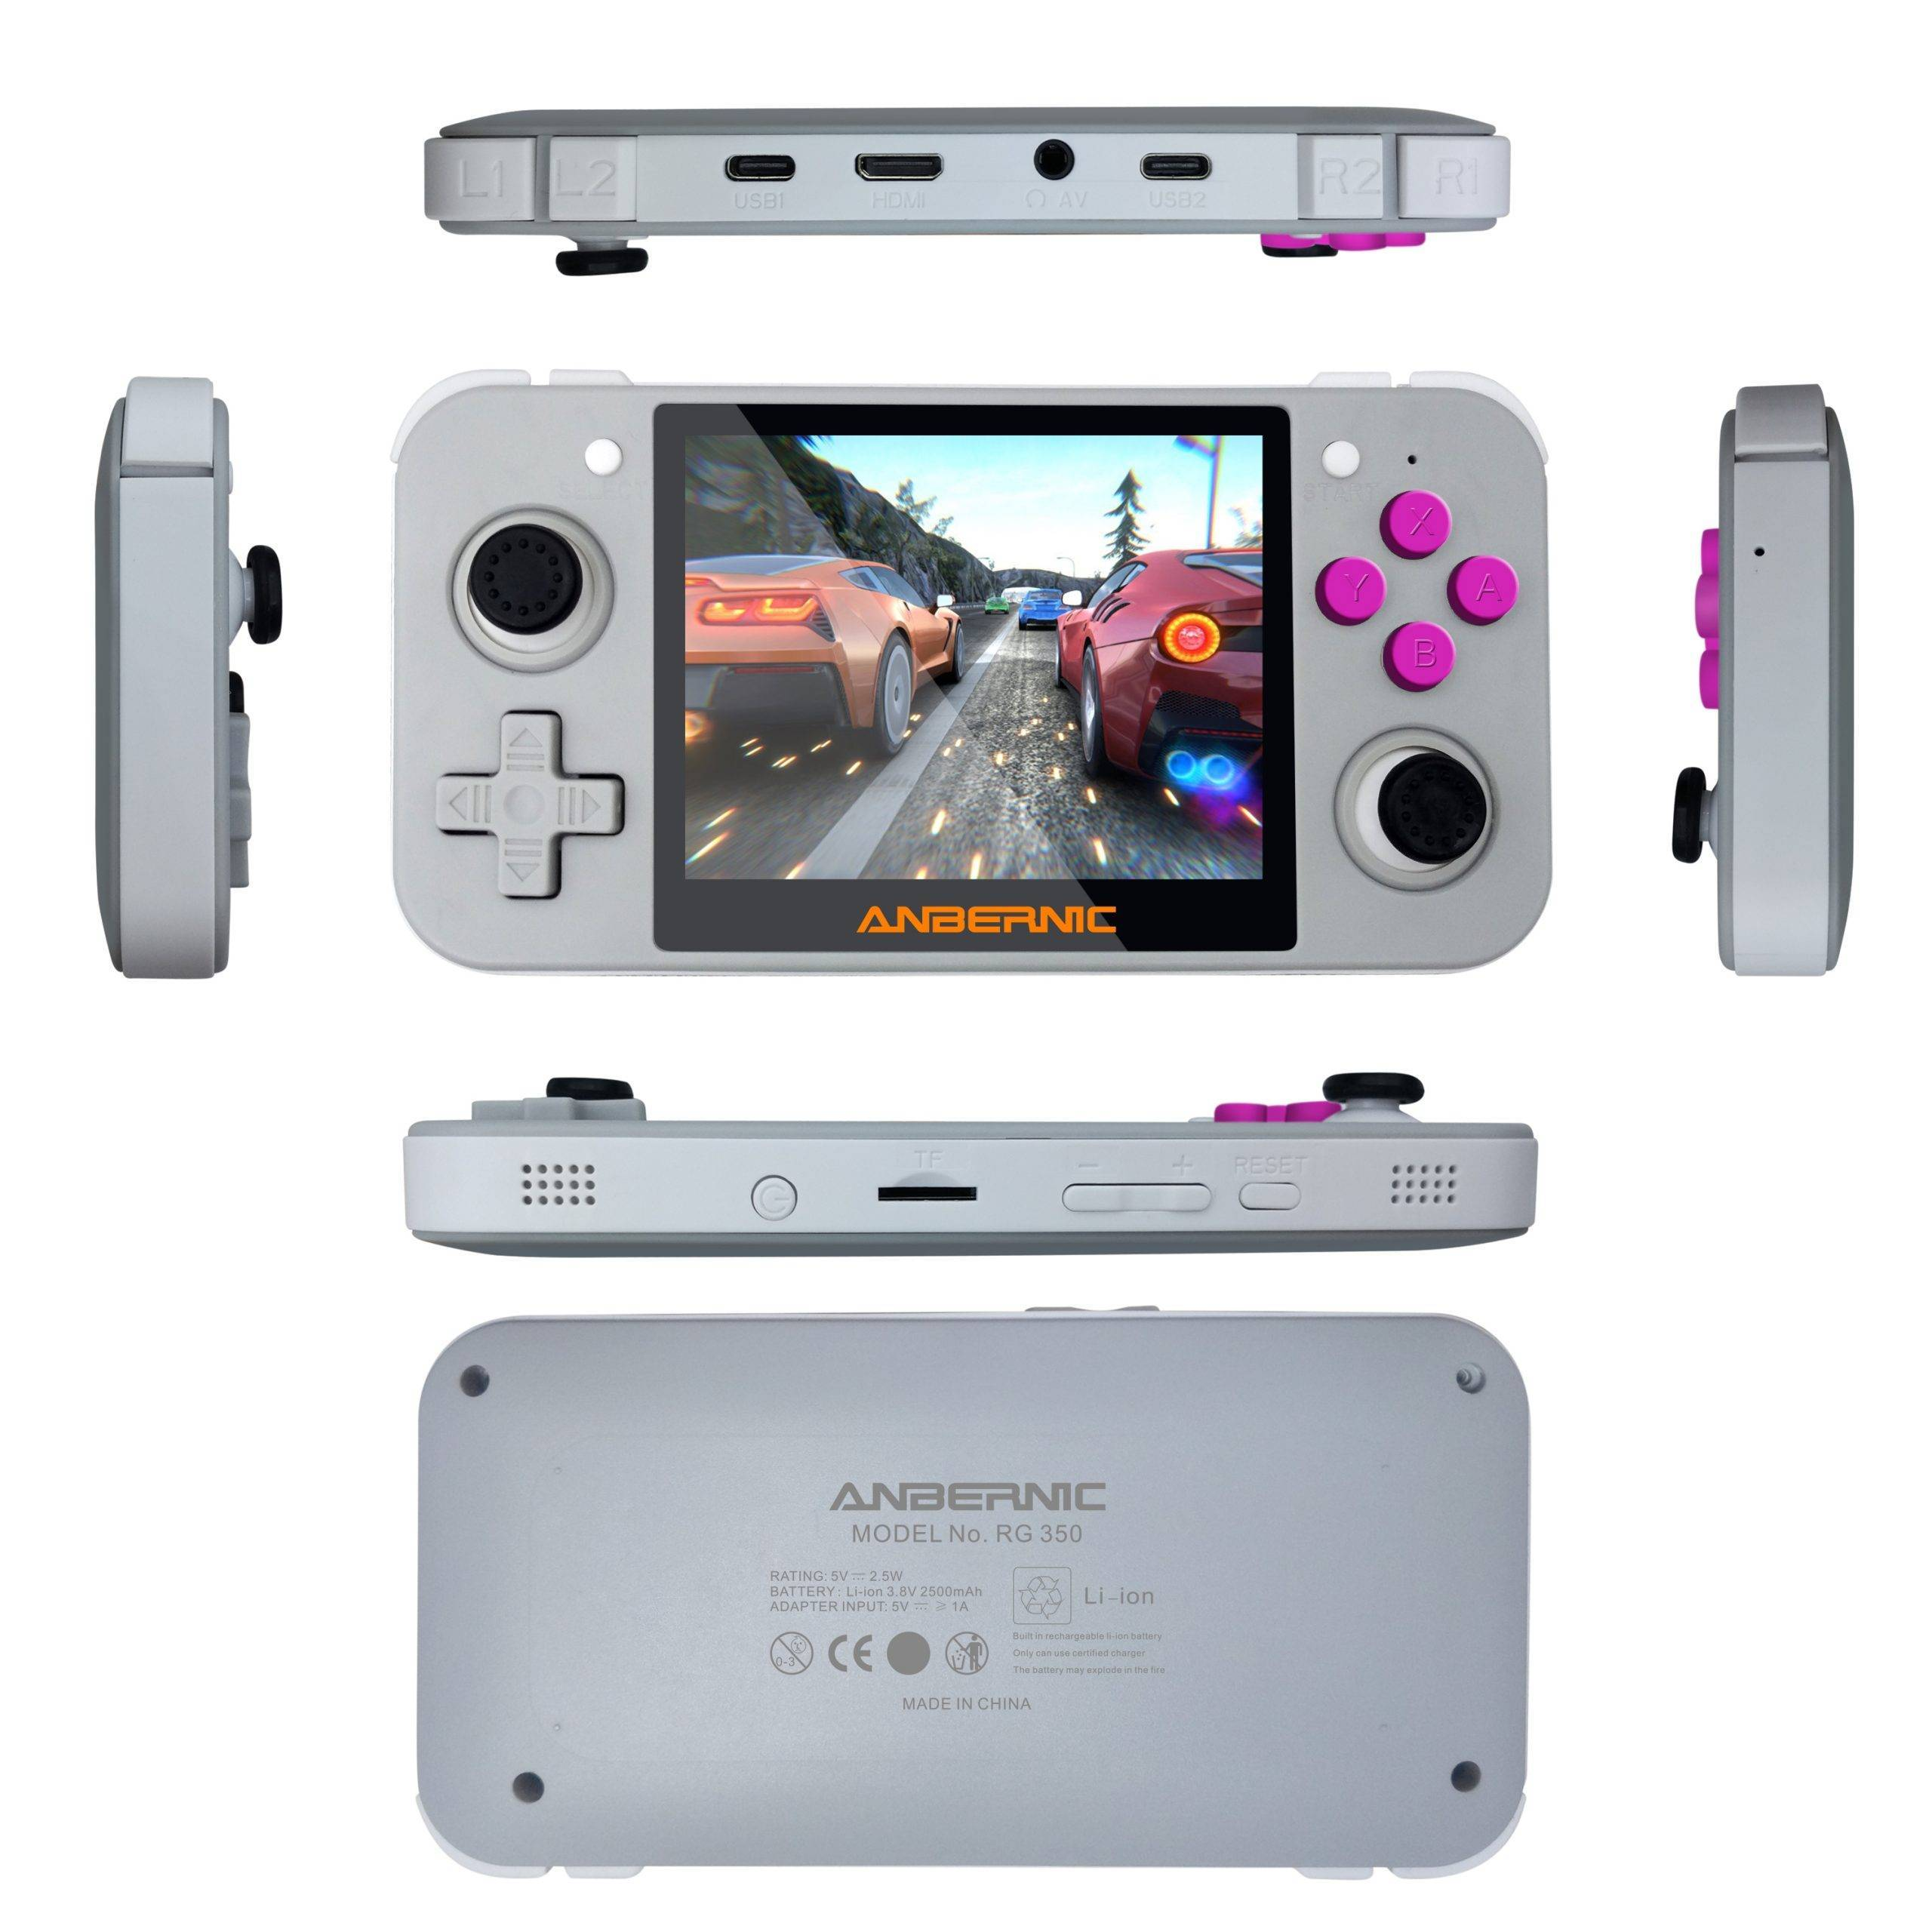 DroiX RetroGame RG350 Retro Gaming Handheld Console - Grey showing All Sides